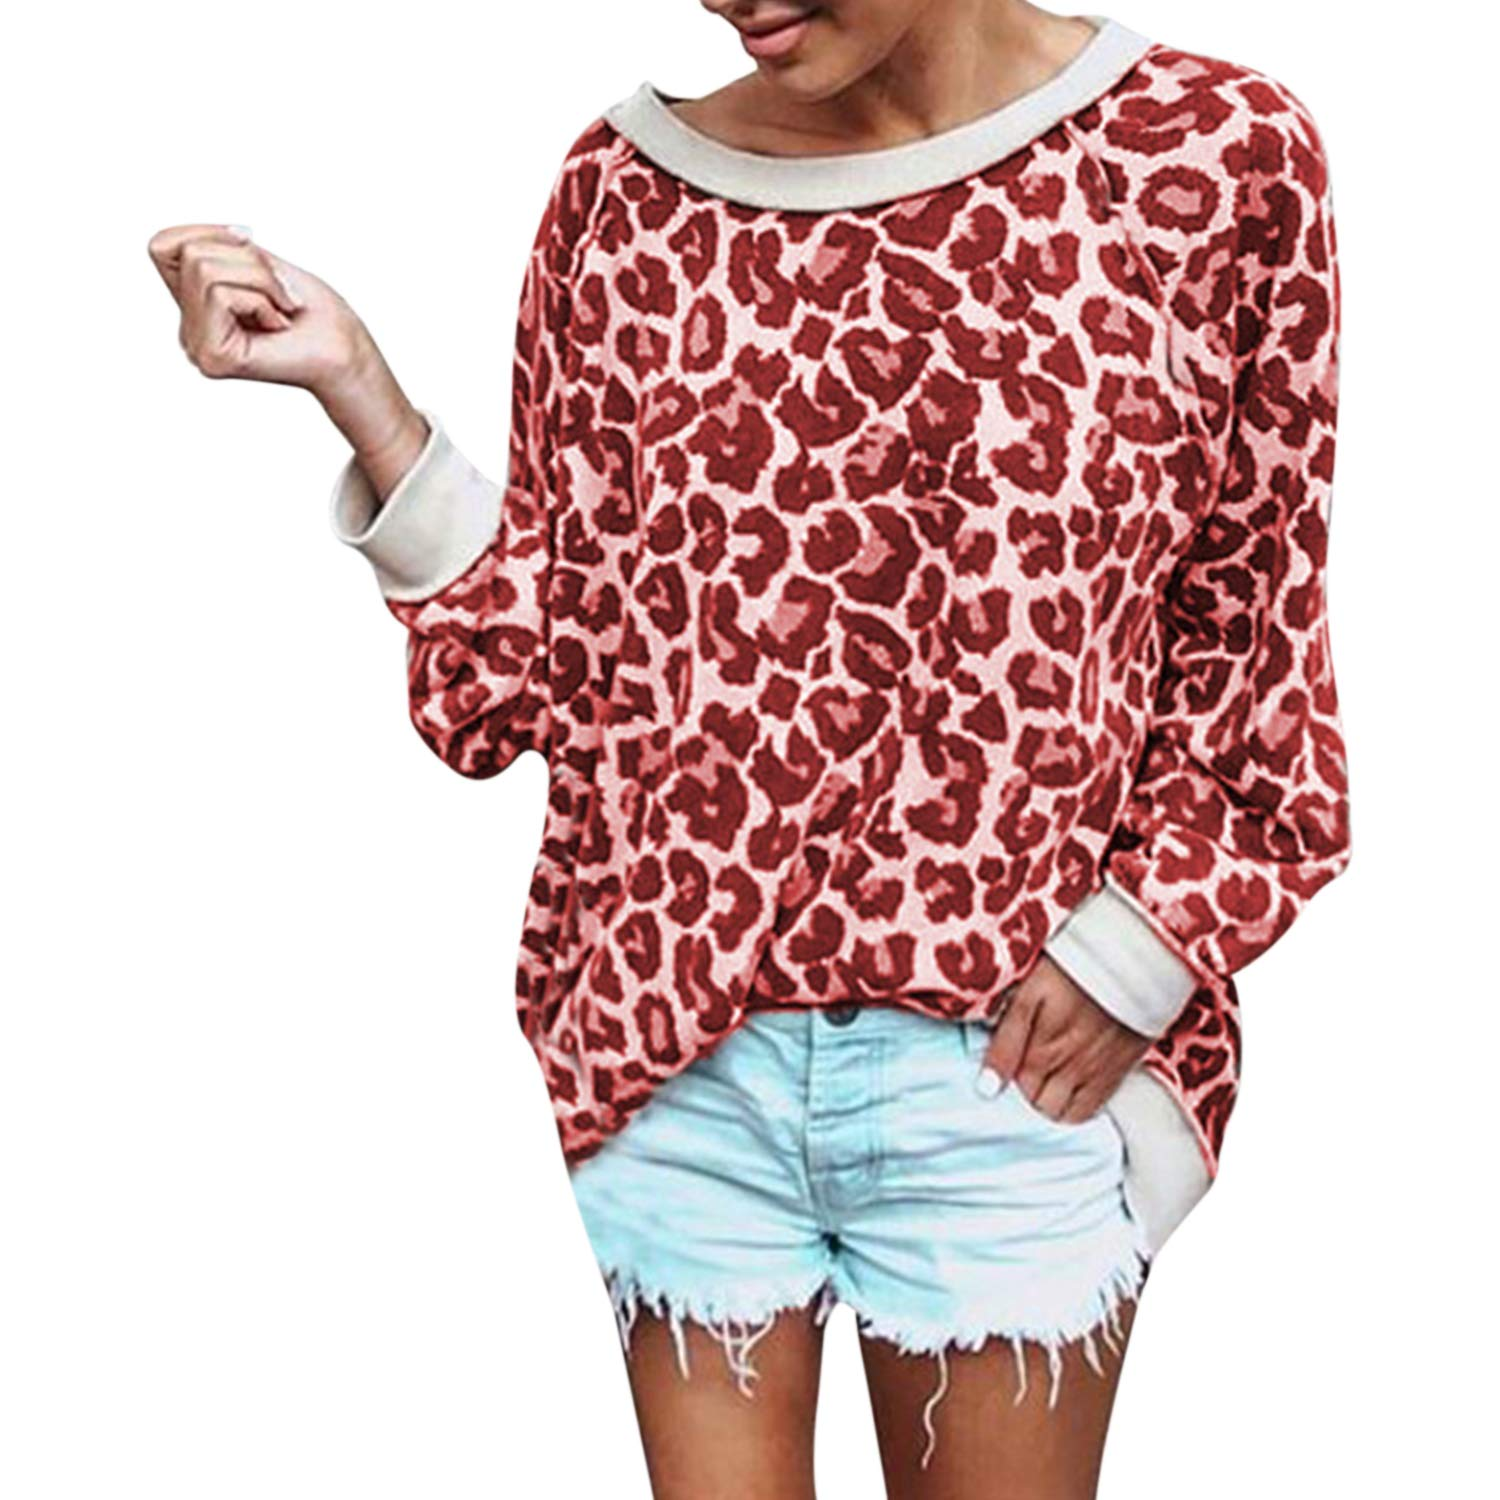 Lisli Womens Casual T-Shirt Leopard Print Pullover Long Sleeve Sweatshirts Top Blouse